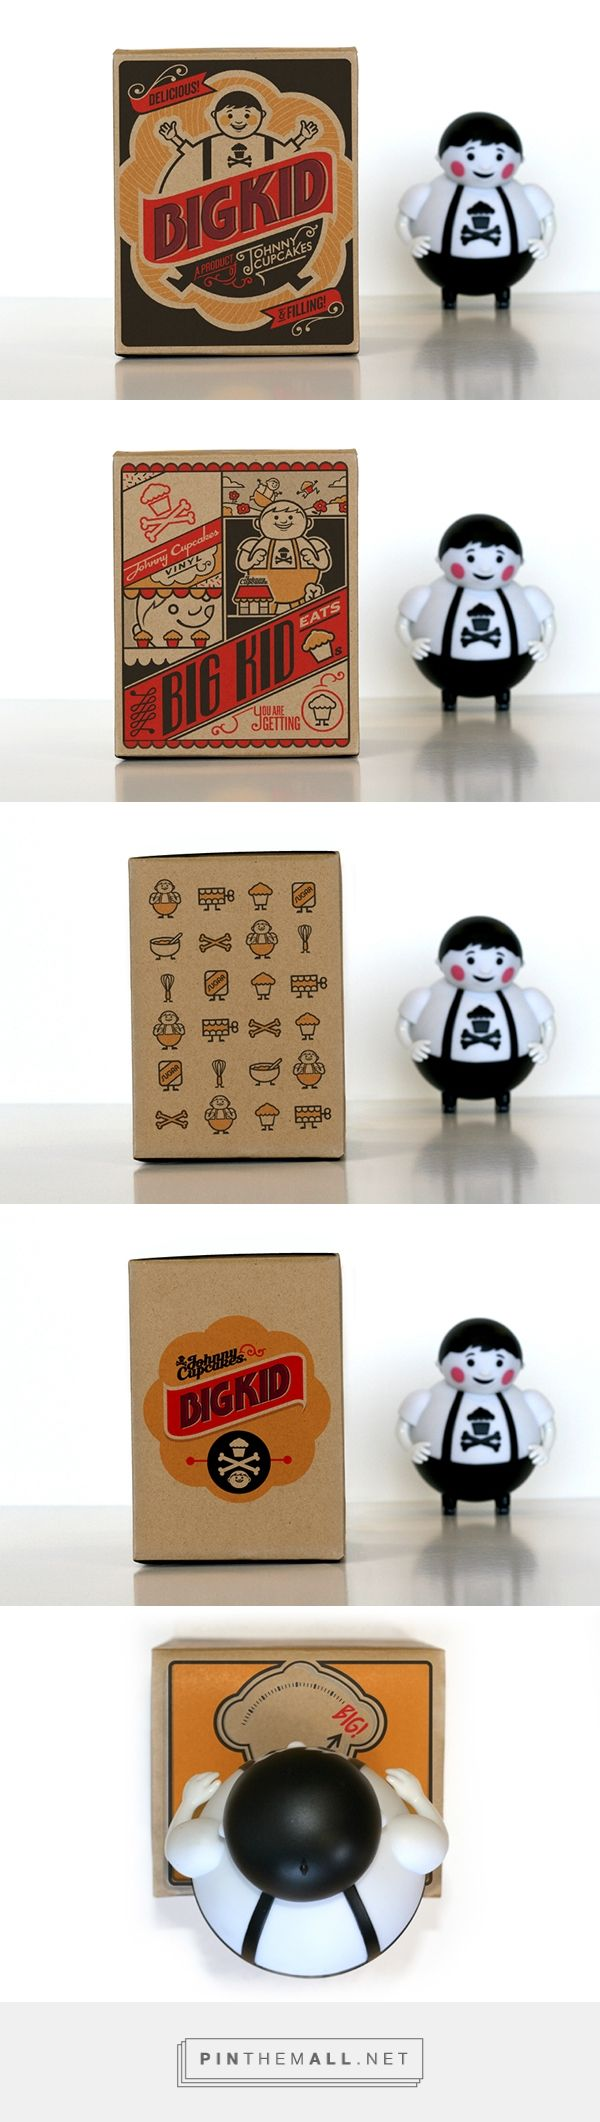 Big Kid Vinyl Toy Packaging - Johnny Cupcakes